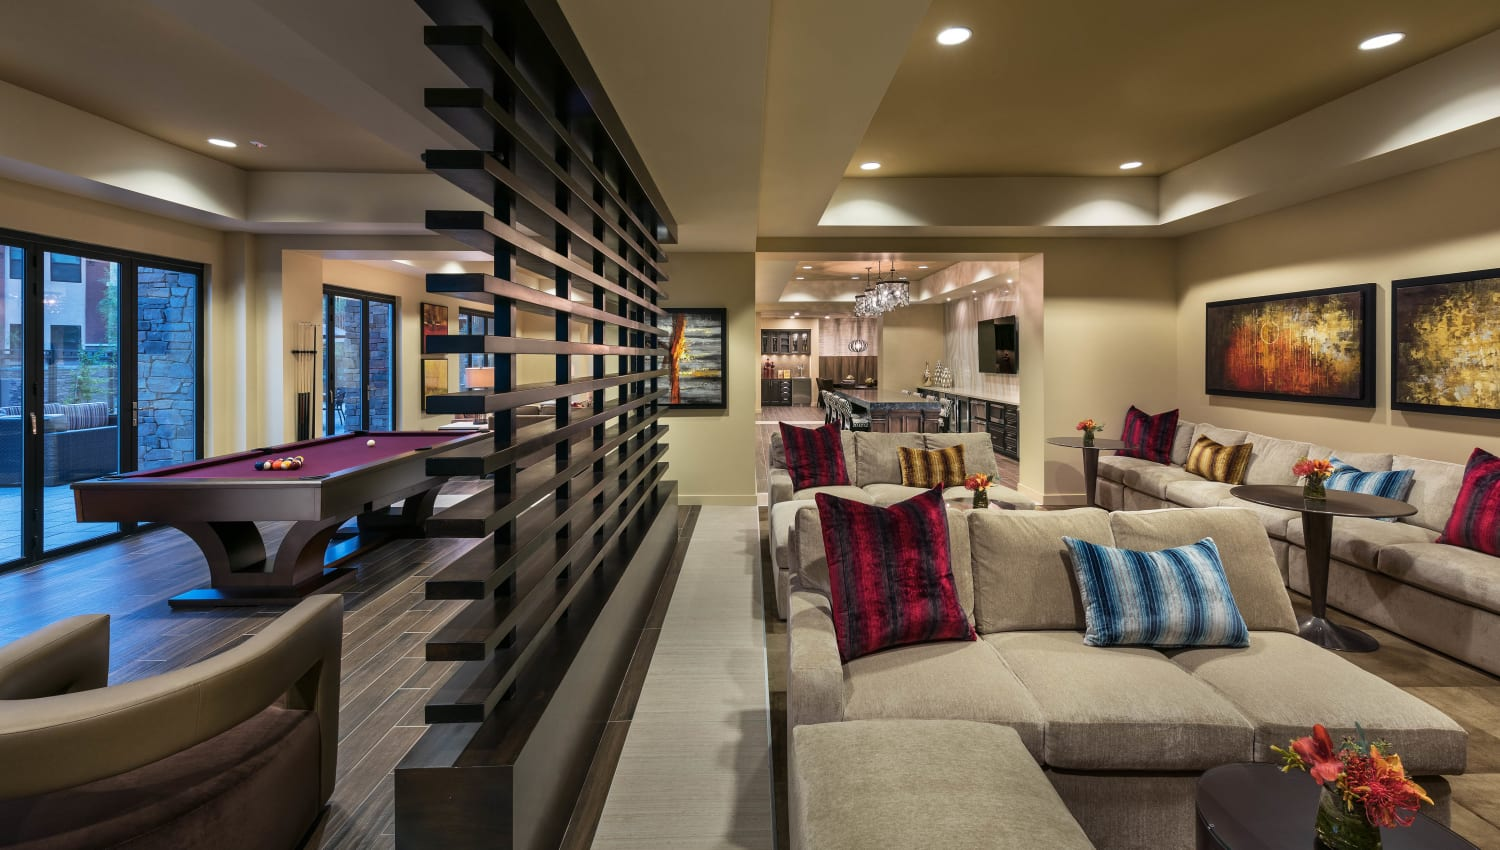 Lounge area near the billiards table in the clubhouse game room at Vistara at SanTan Village in Gilbert, Arizona